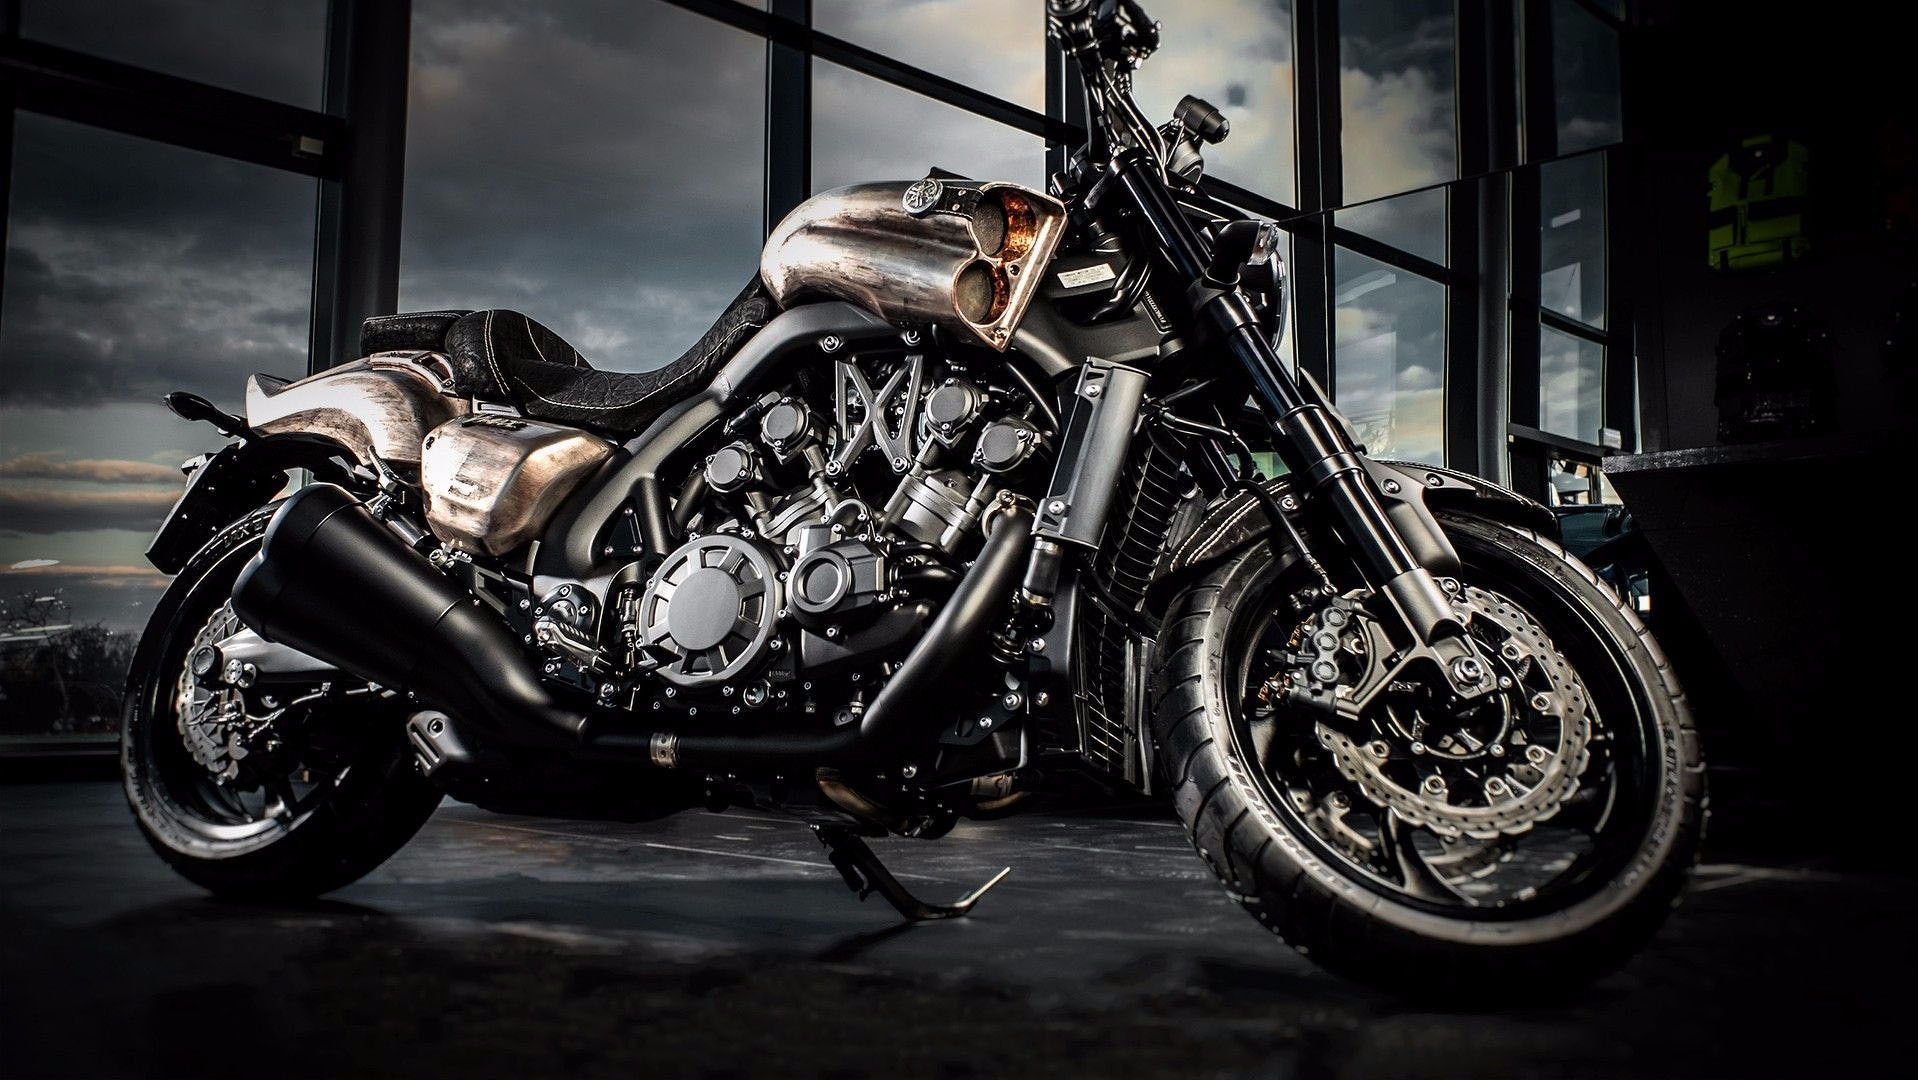 Carlex Channels Mad Max For Custom Yamaha V 1700